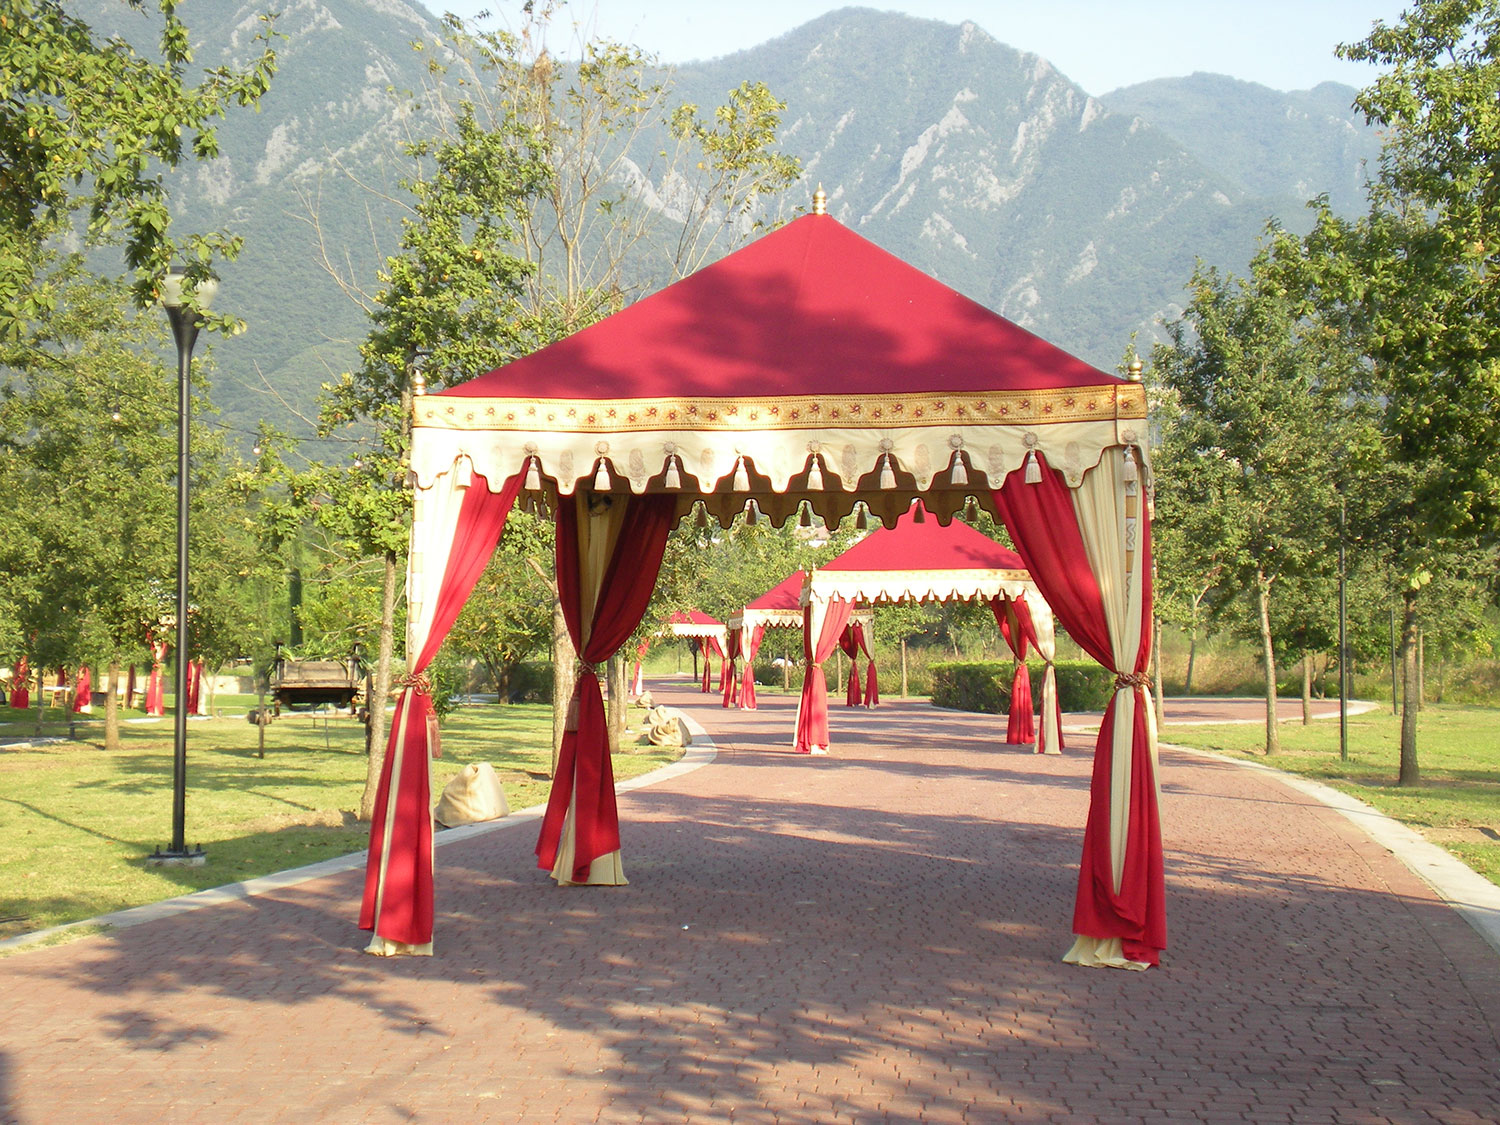 raj-tents-destination-events-pergola-mountains.jpg